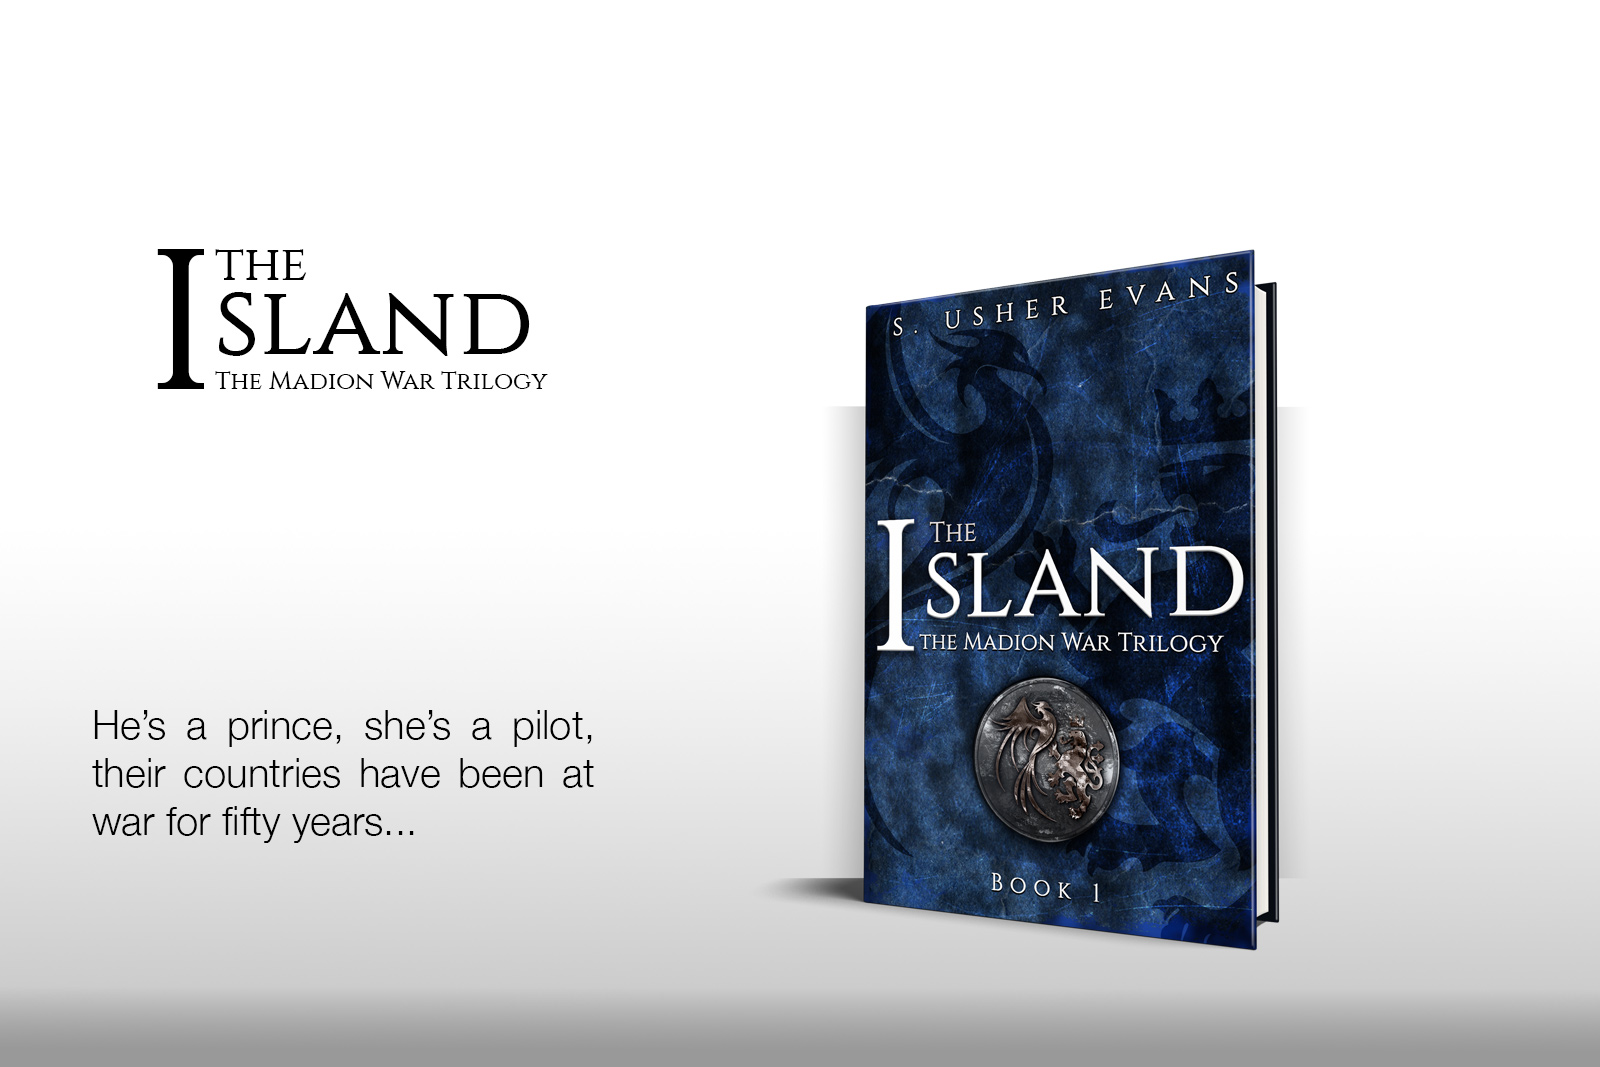 S. Usher Evans, author of The Island and the Madion War Trilogy